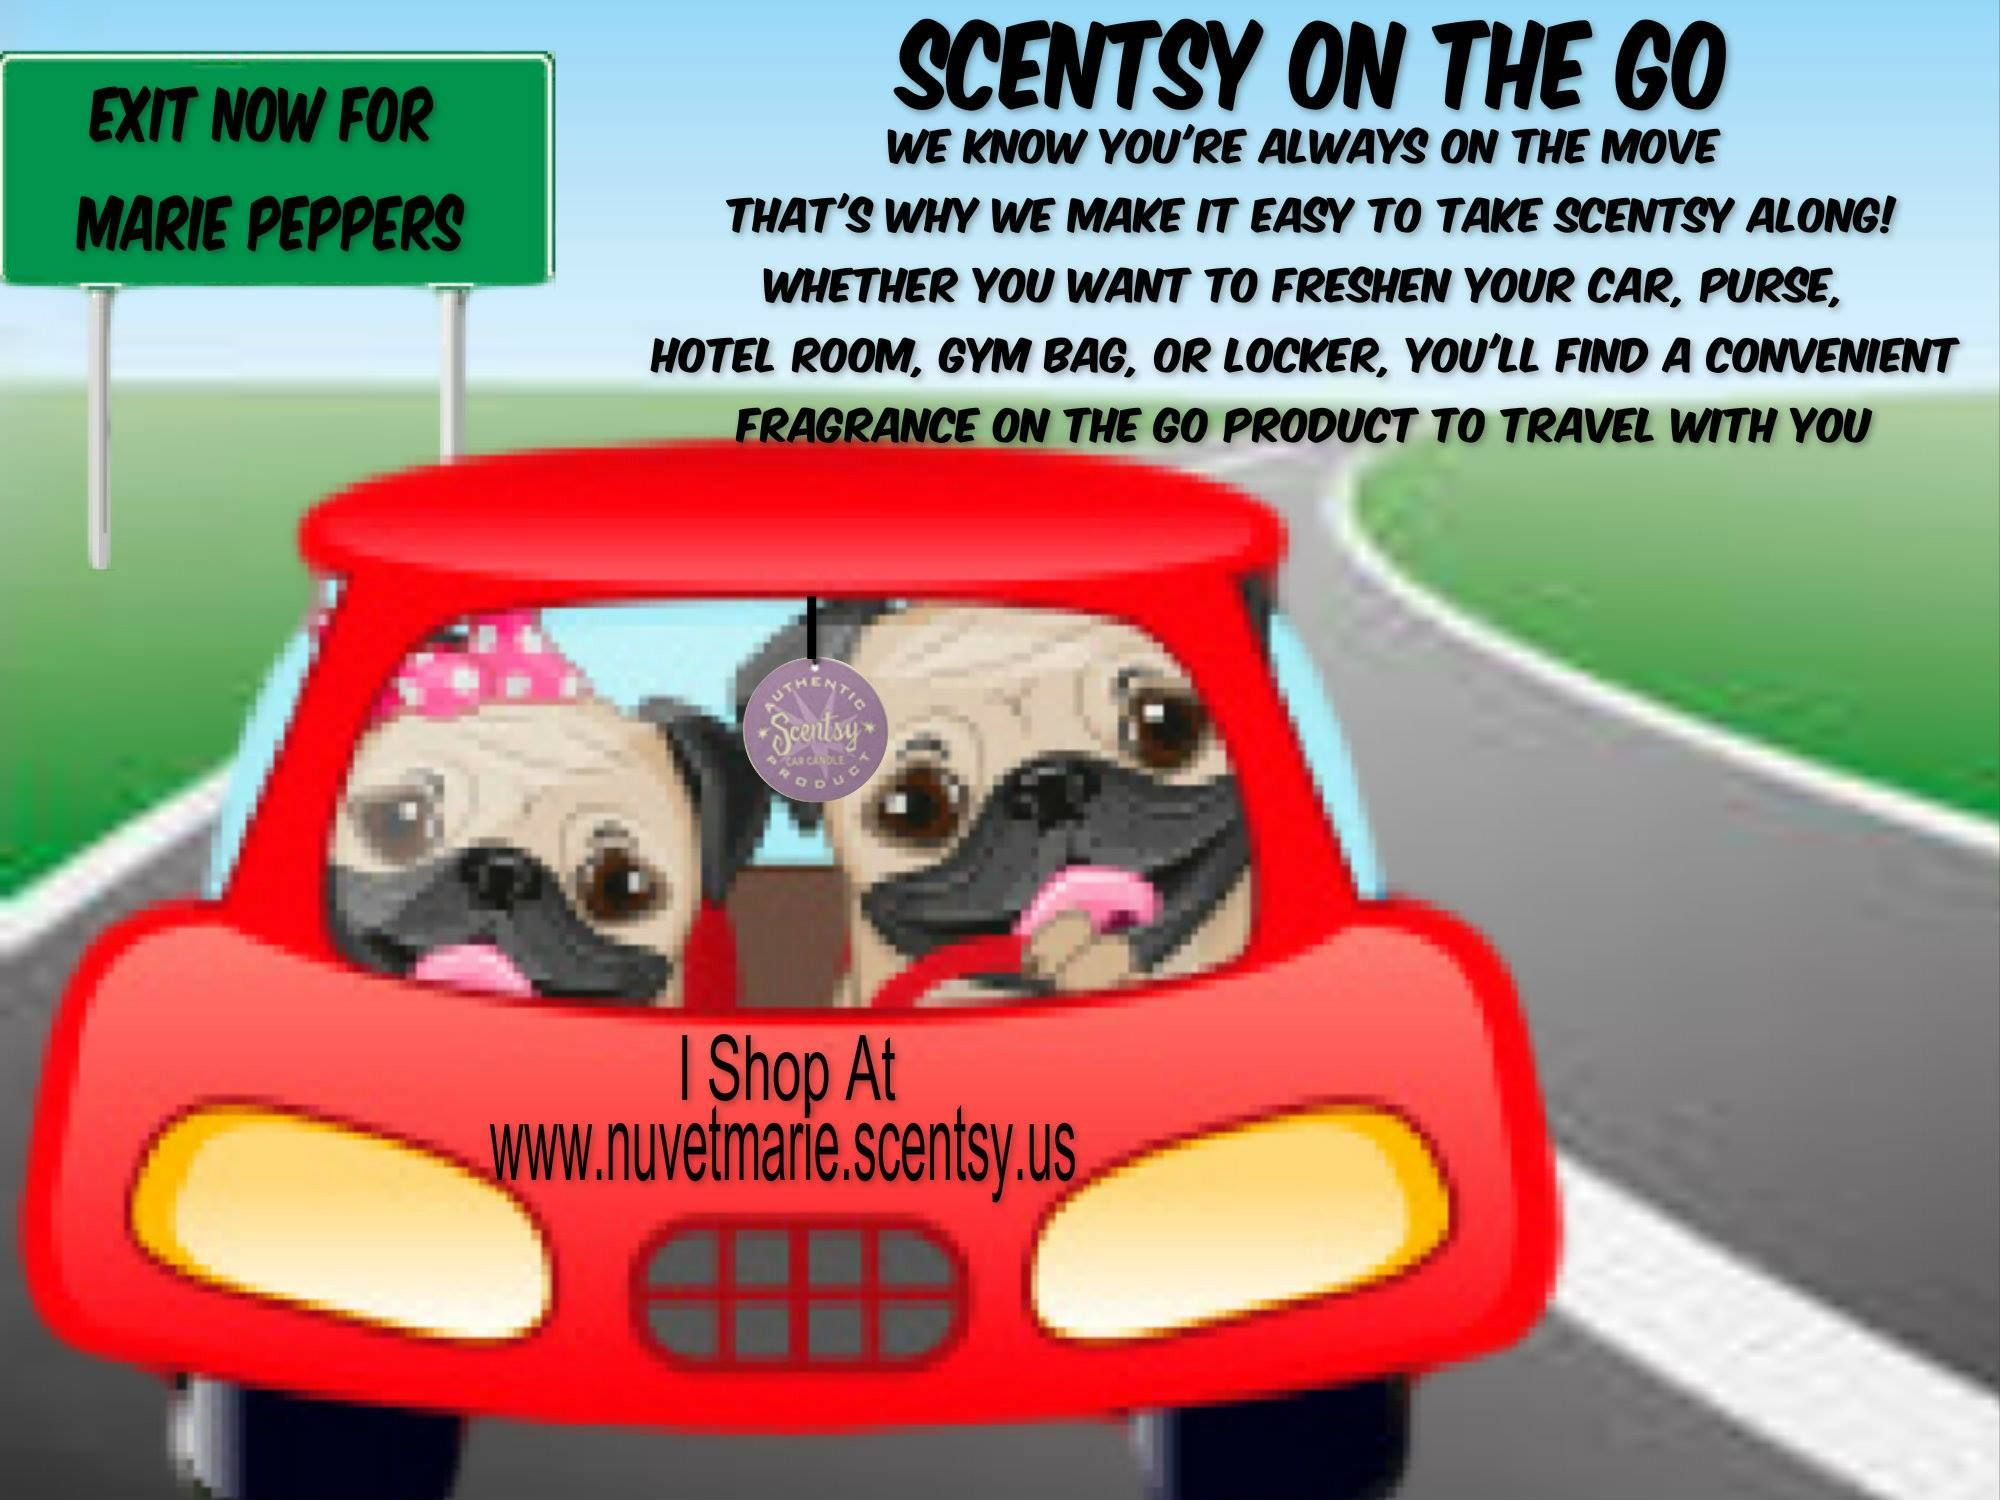 Scentsy is pet safe and will make your Auto smell